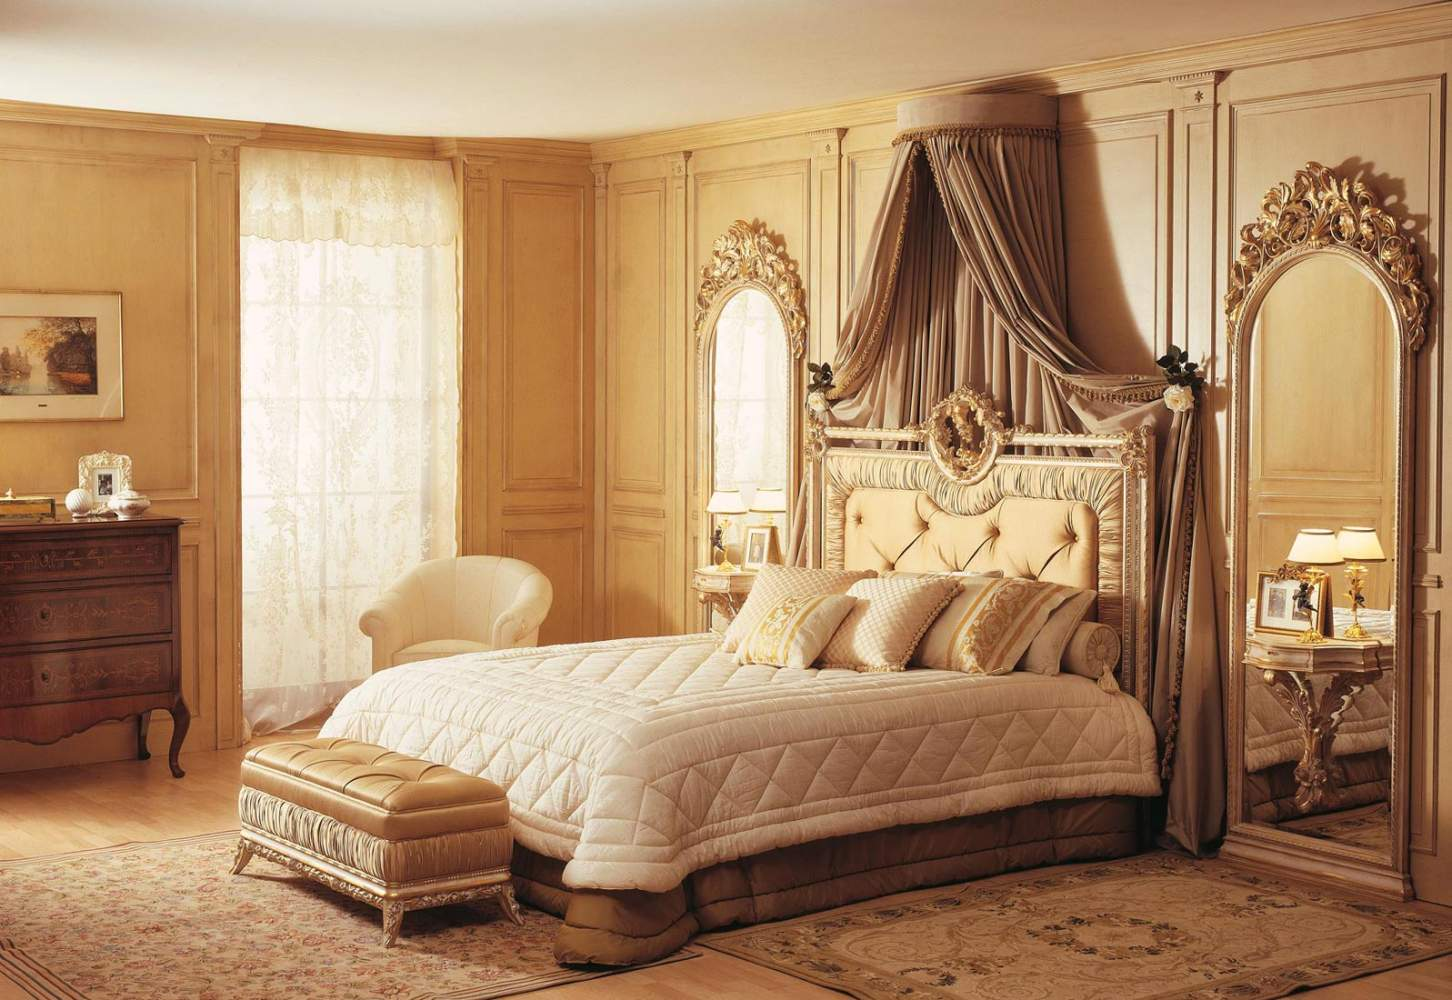 Furniture for classic bedroom of the Louvre version